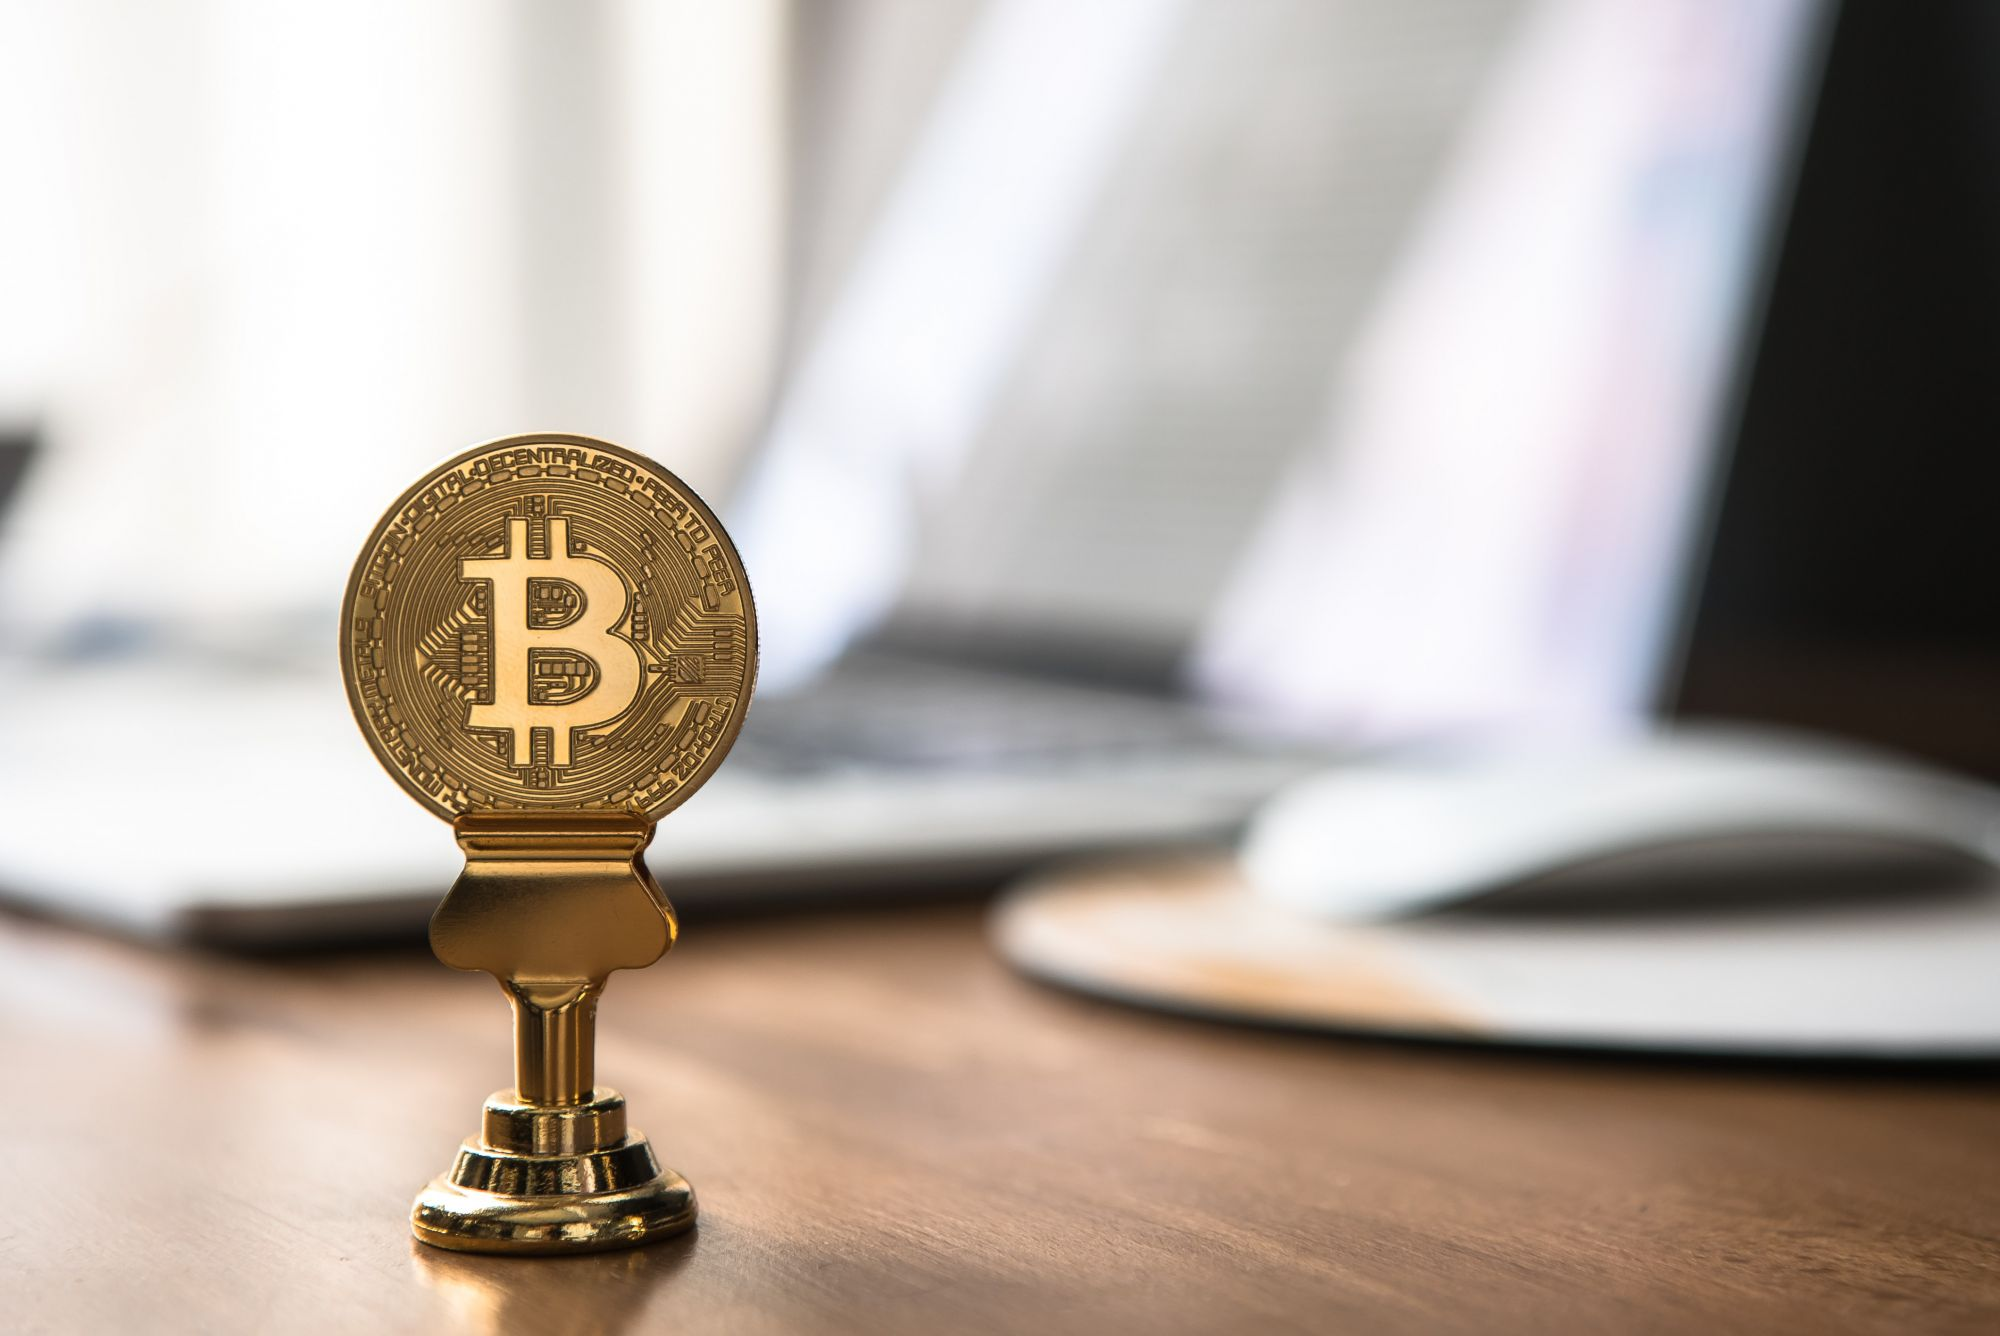 How to Buy Bitcoin if You are a Beginner